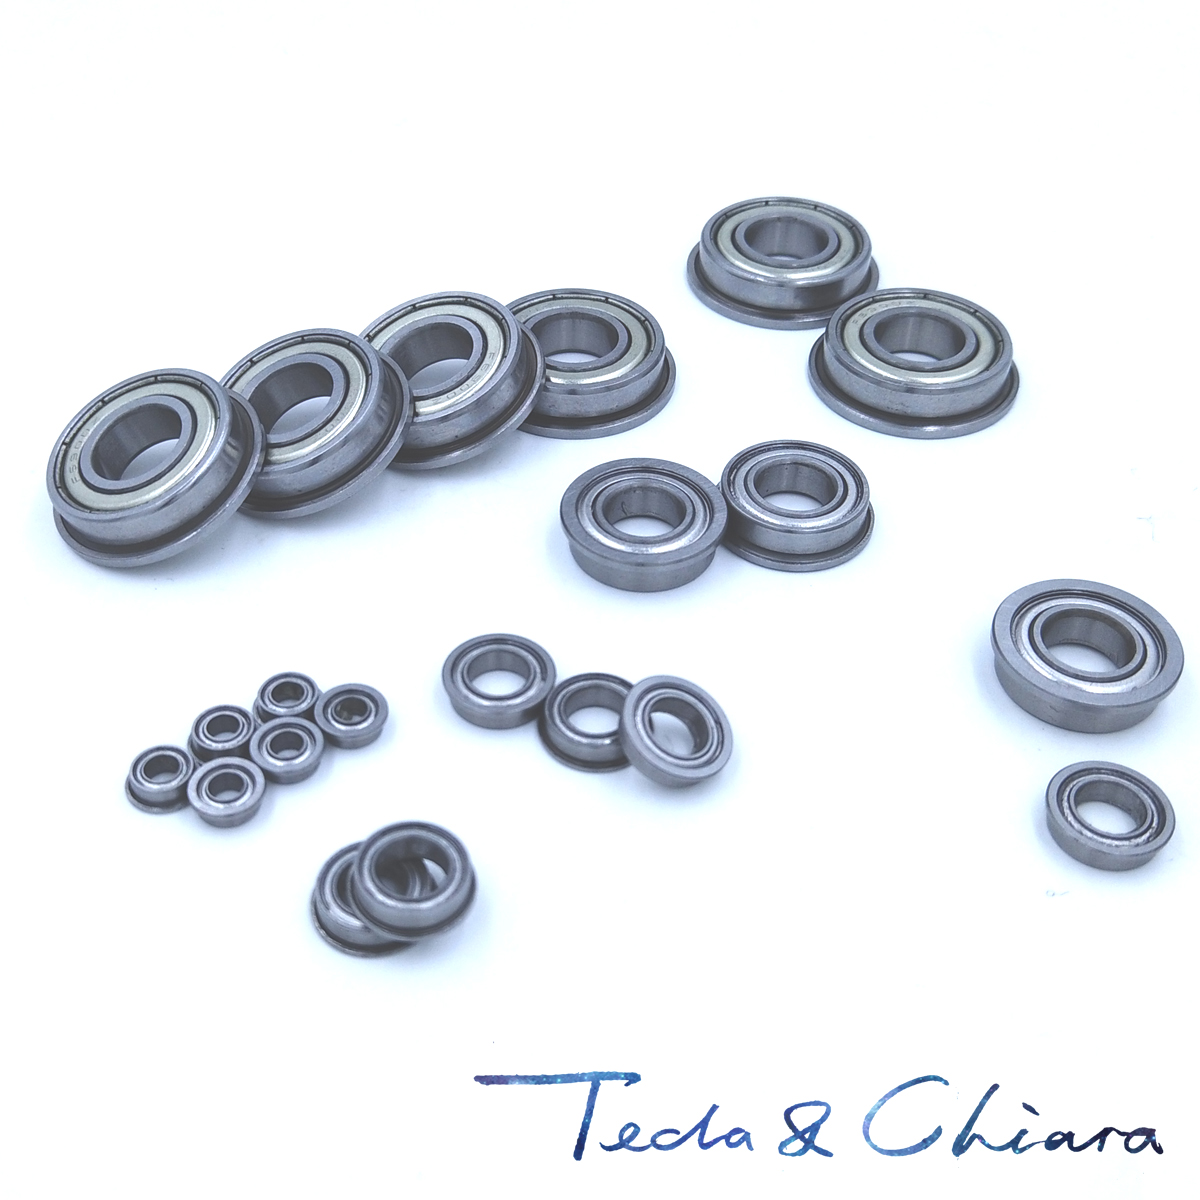 10Pcs 1Lot MF95 MF95-ZZ MF95ZZ MF95-2Z MF95Z Zz Z 2z DDLF-950ZZ Flanged Flange Deep Groove Ball Bearings 5 X 9 X 3mm